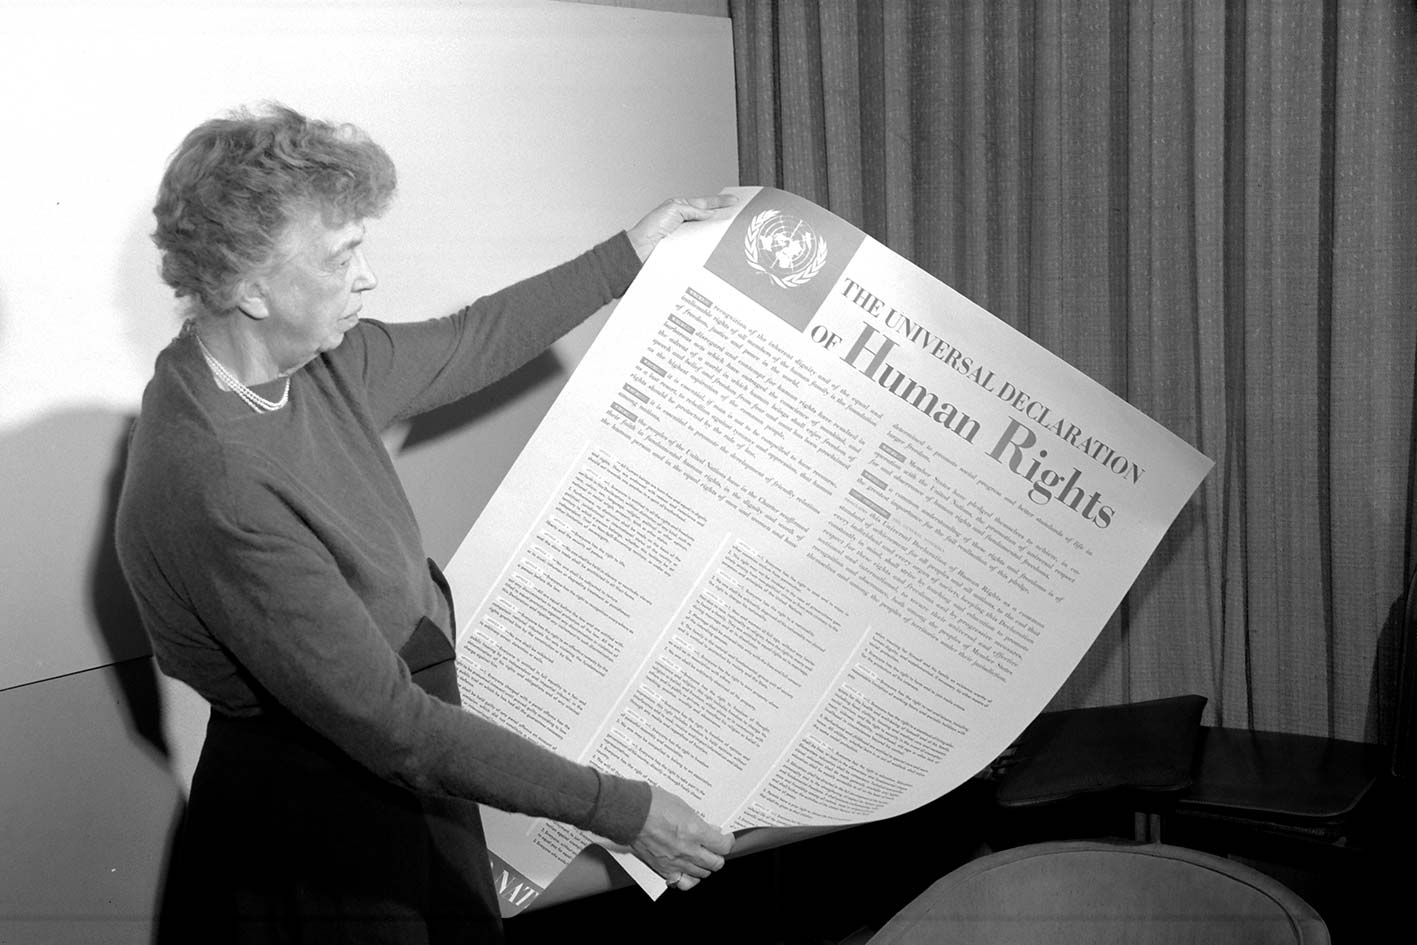 All You Need to Know About Universal Declaration of Human Rights